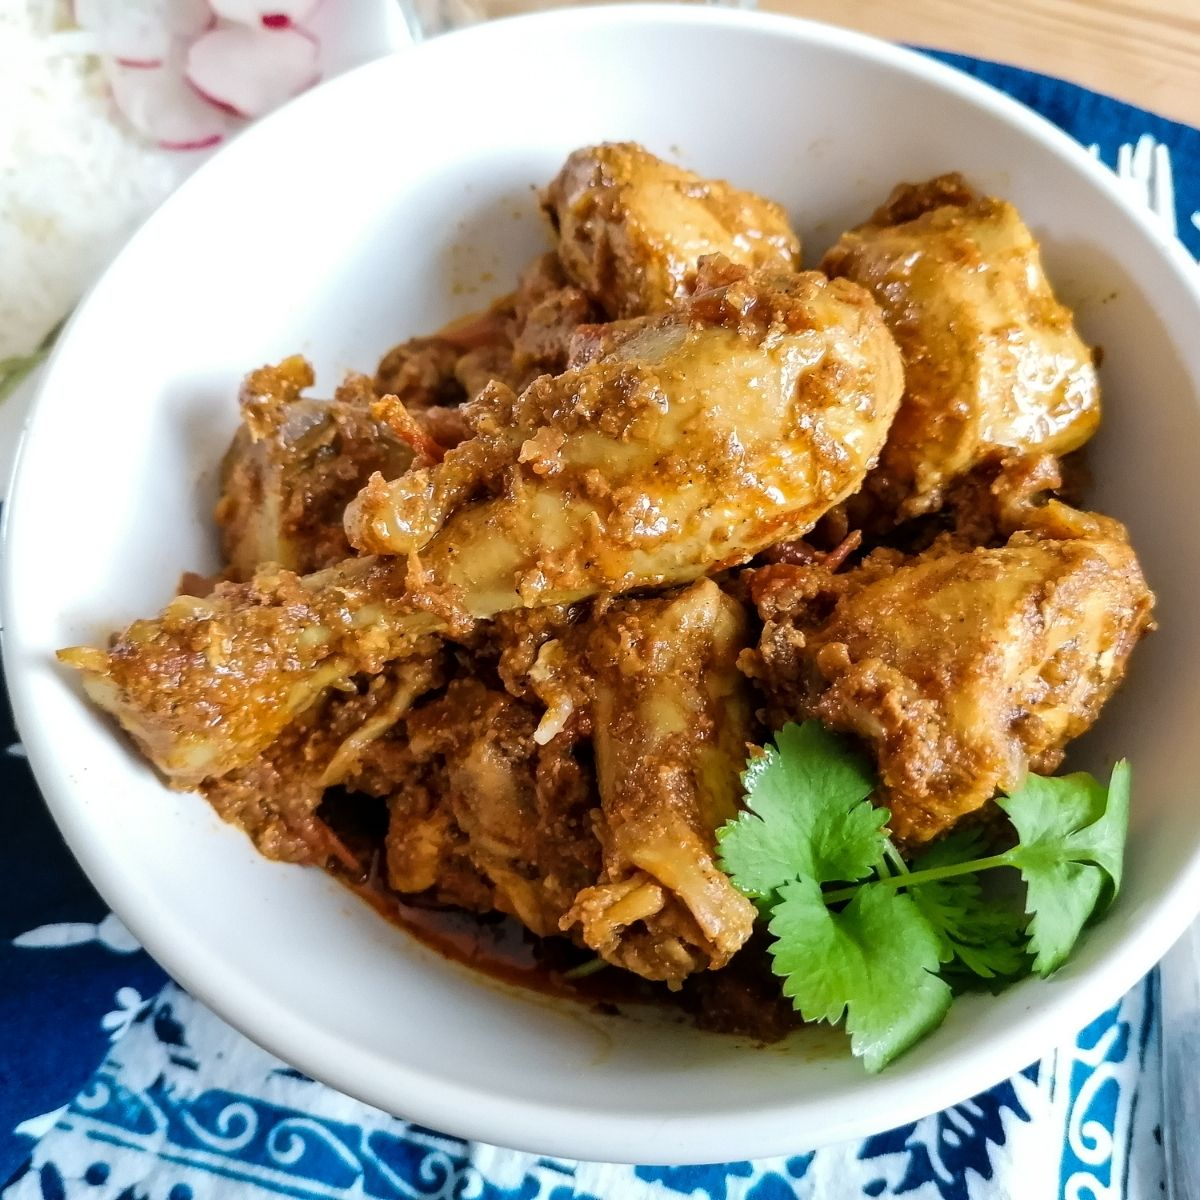 Chicken Karahi Pakistani style in a white bowl with coriander leaves garnish